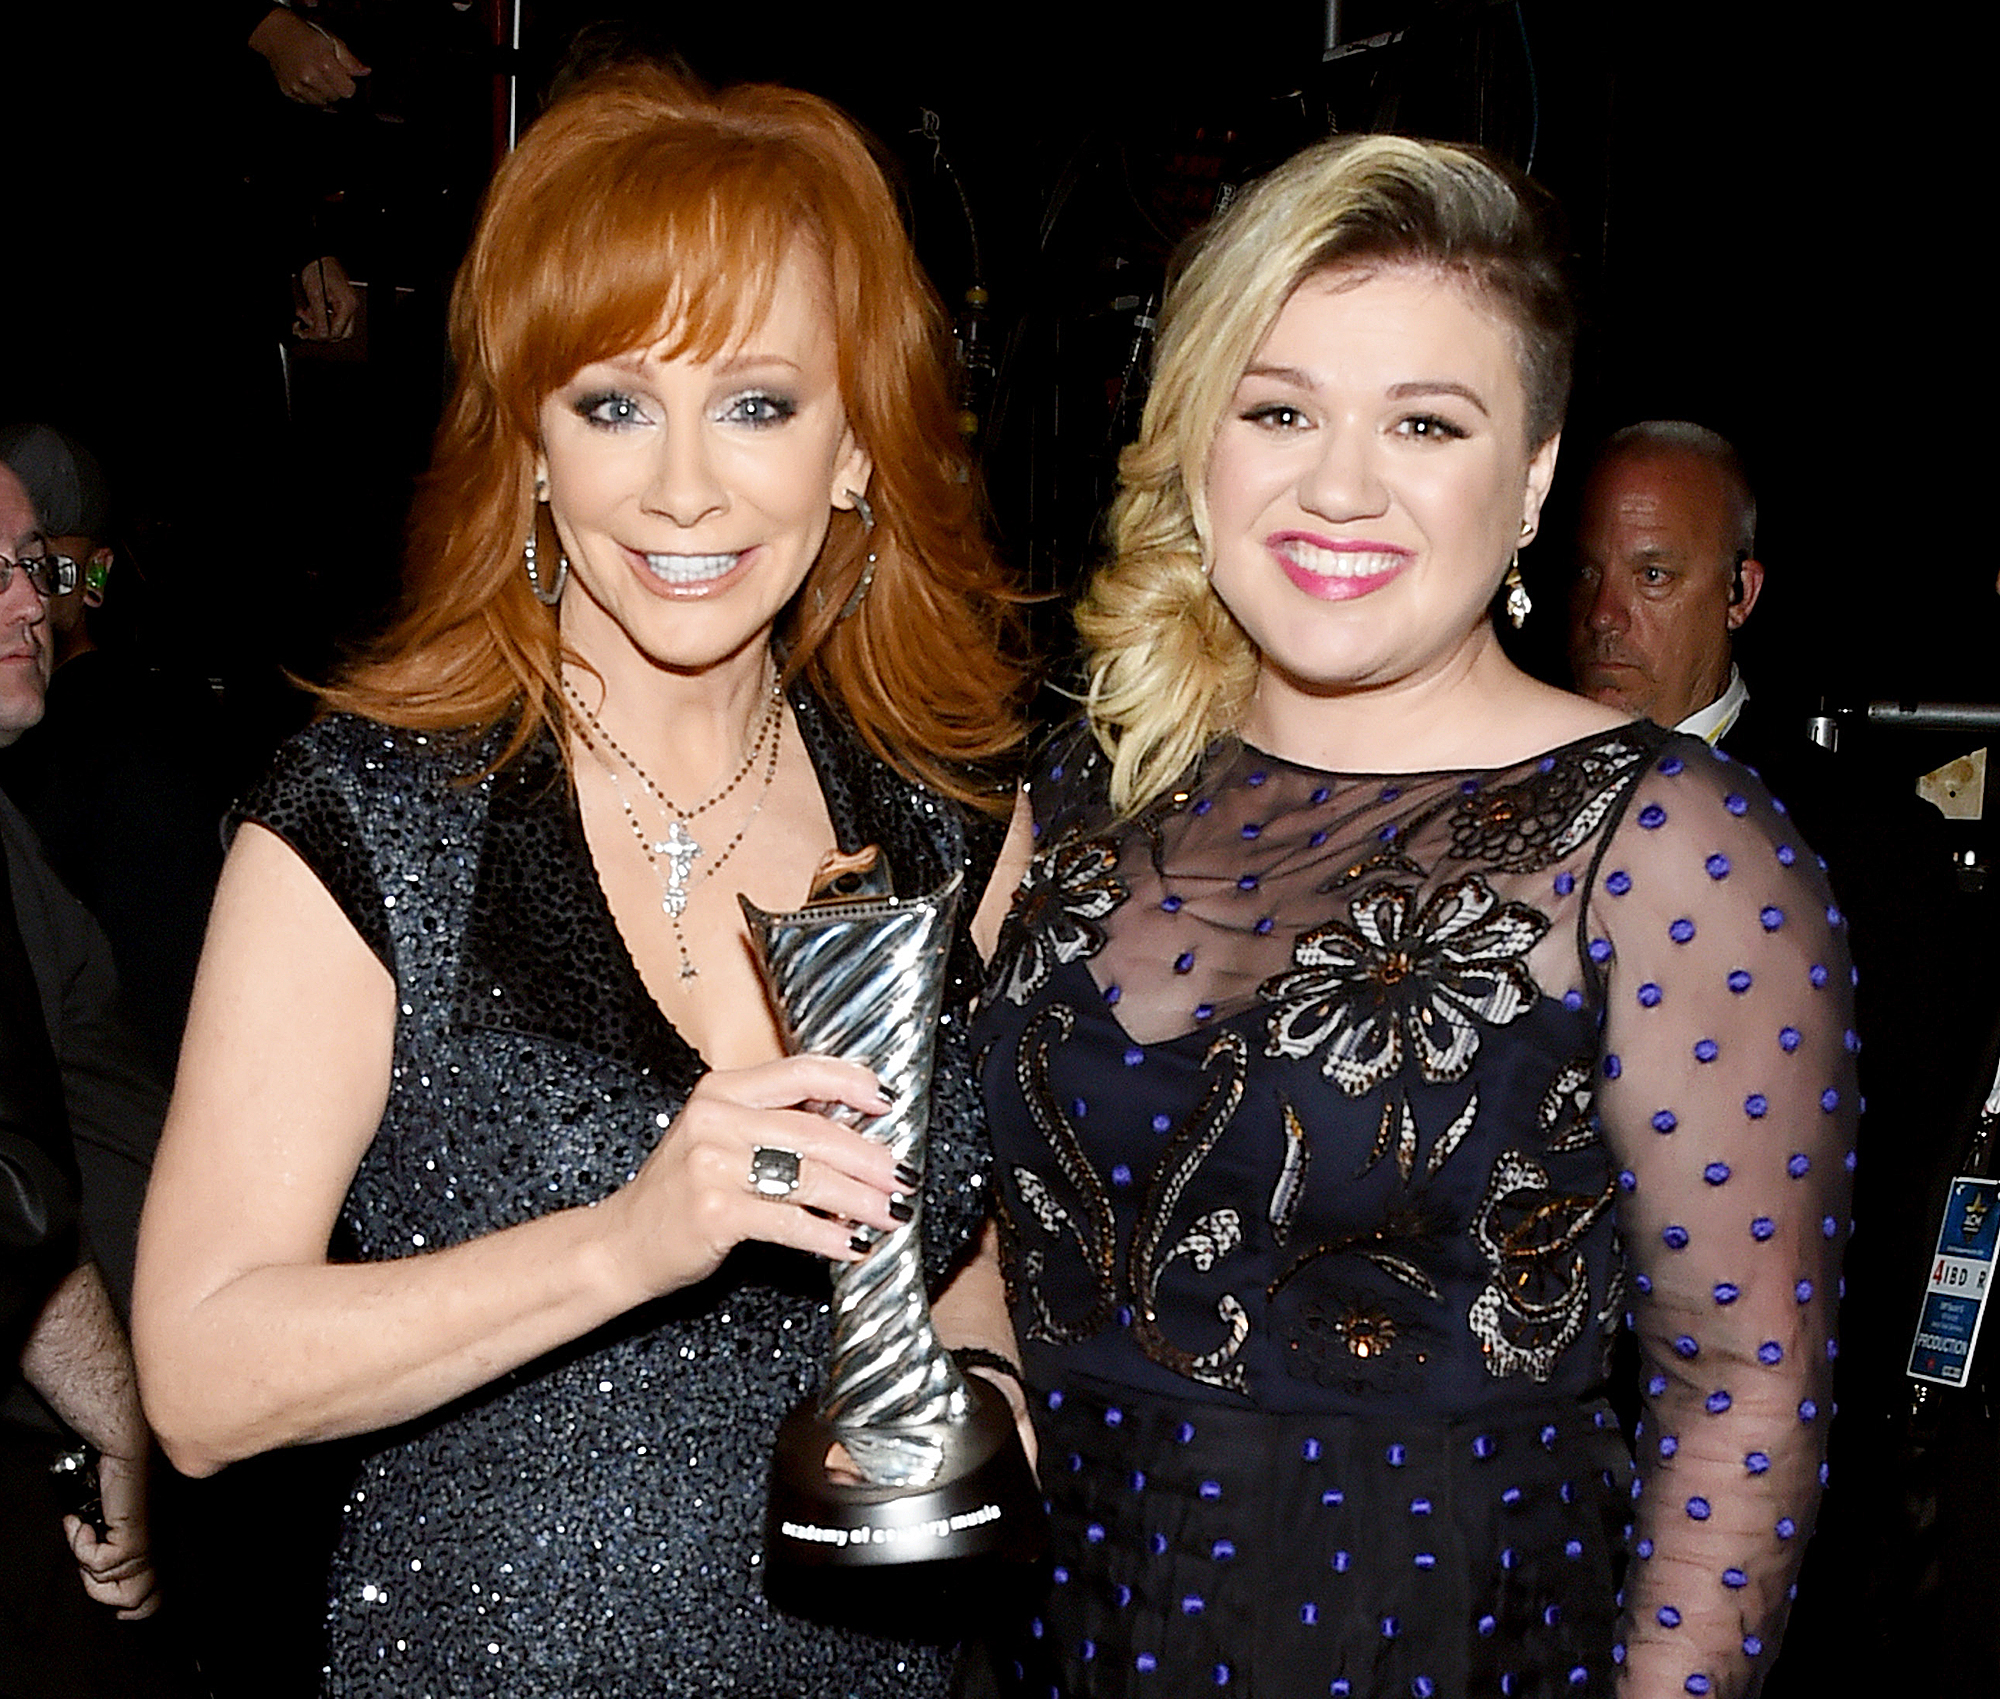 Host reba mcentire don t expect political jokes at the for How many kids does reba mcentire have